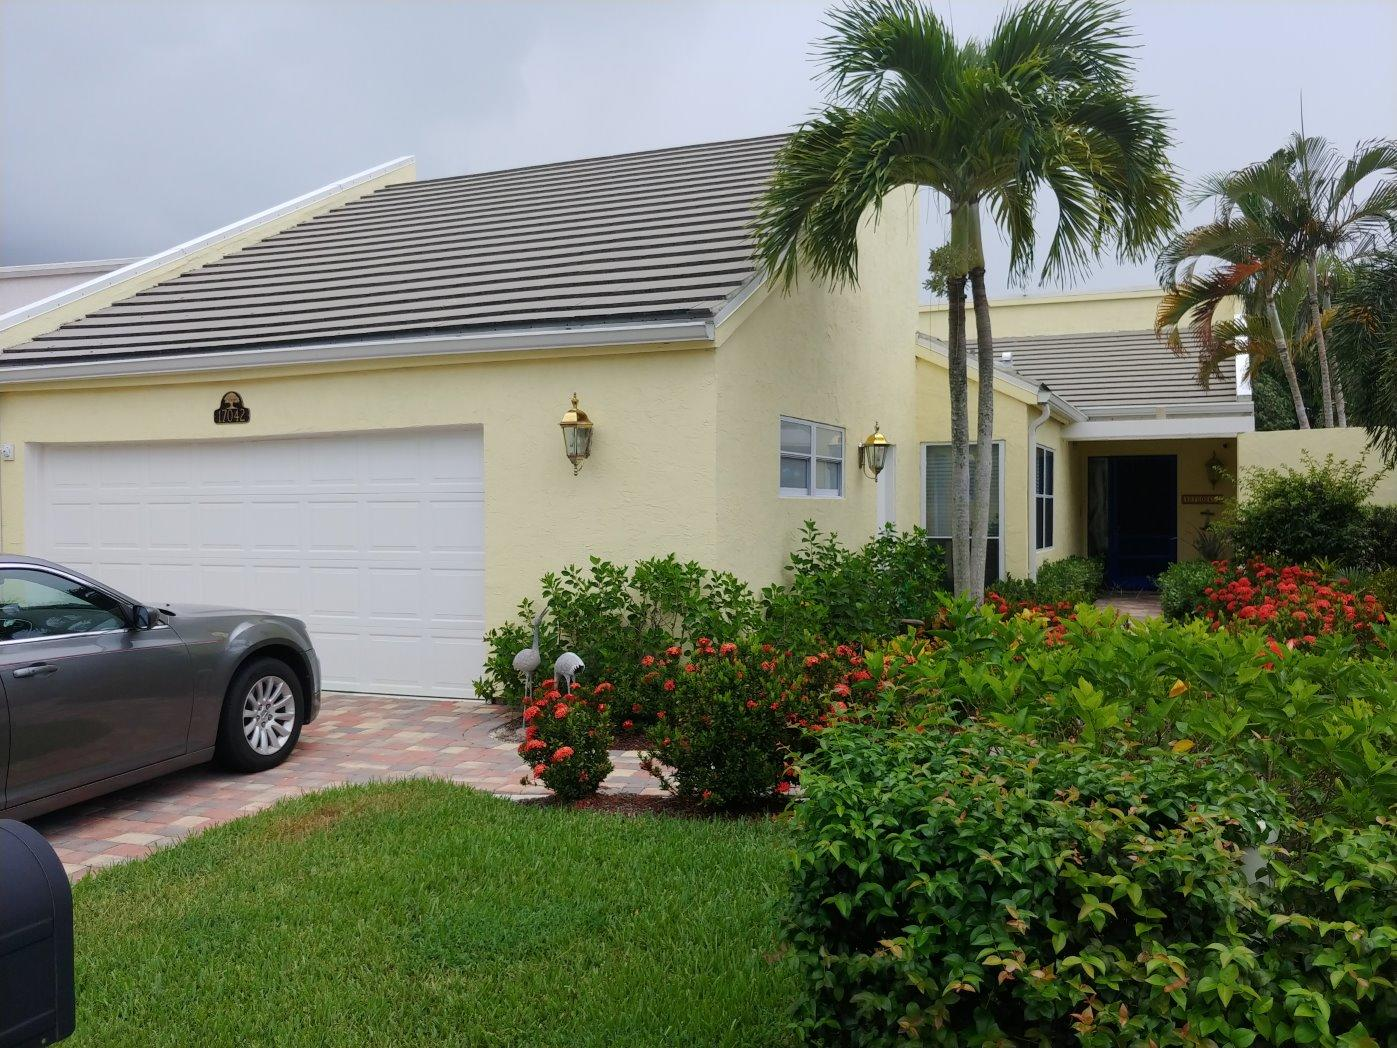 17042 Traverse Circle, Jupiter, Florida 33477, 2 Bedrooms Bedrooms, ,2.1 BathroomsBathrooms,F,Single family,Traverse,RX-10527564